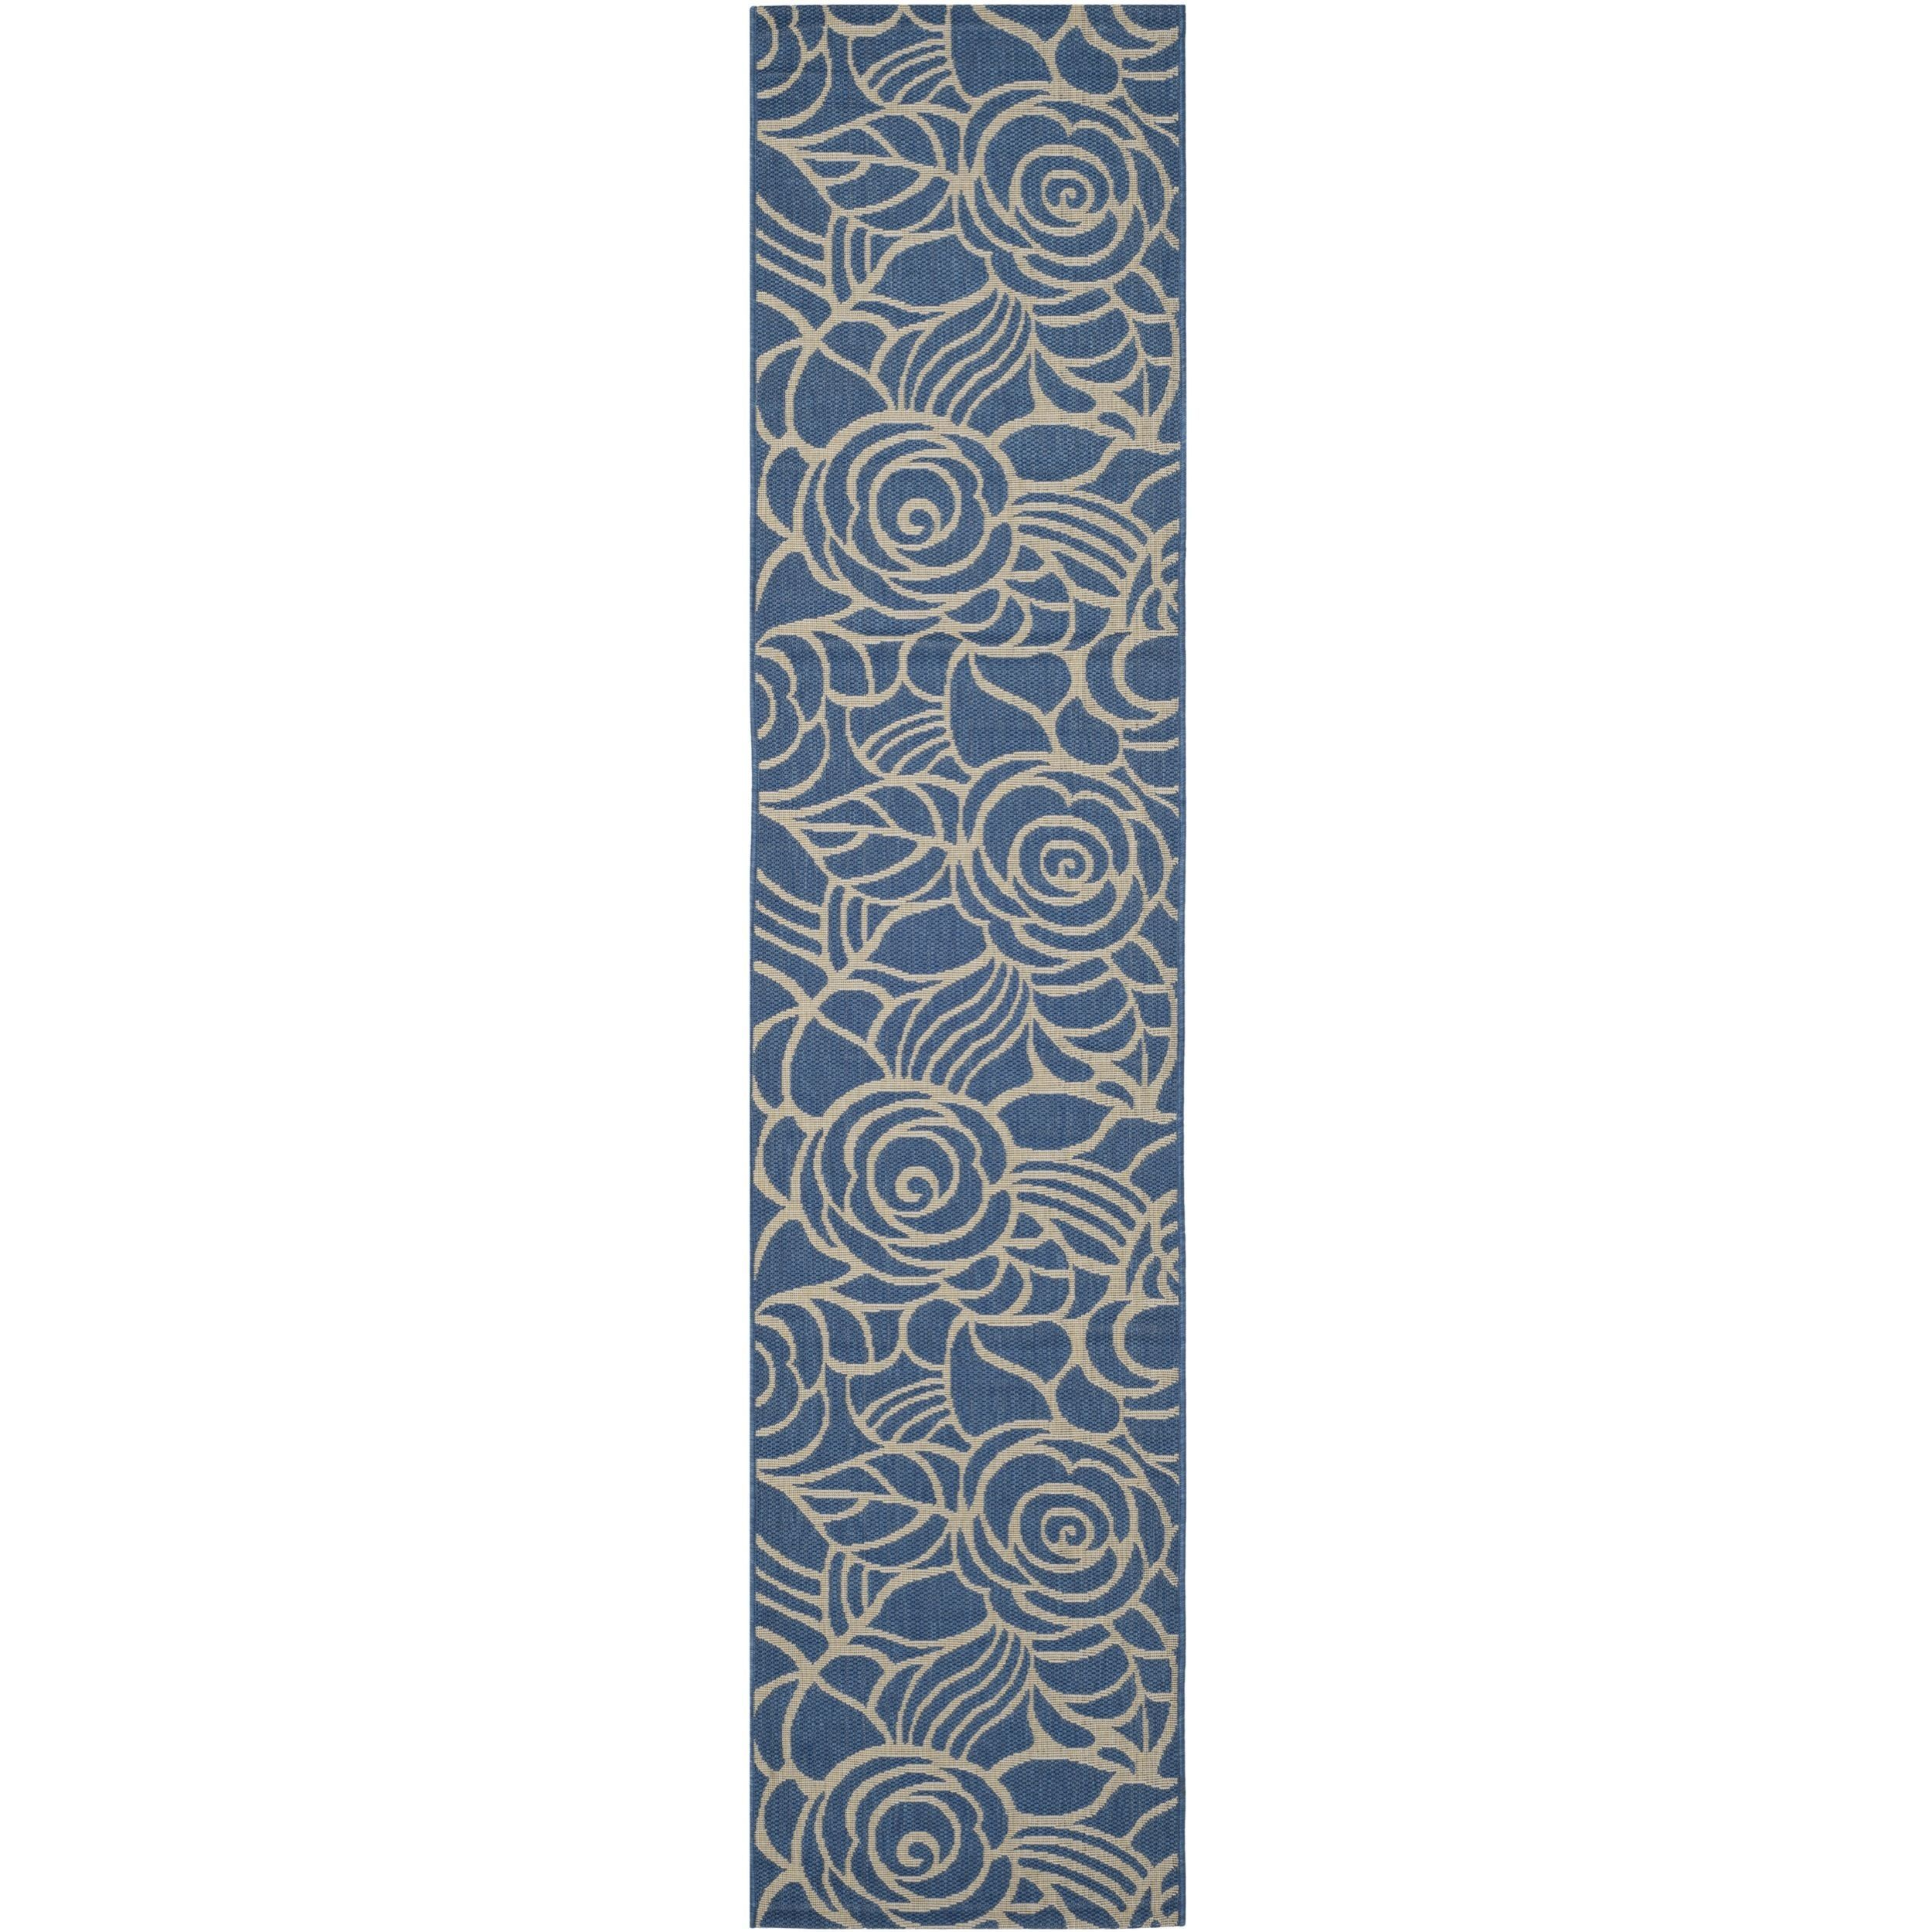 Safavieh Indoor/ Outdoor Courtyard Blue/ Beige Rug (2'4 x 12') (CY5141C-212), Size 2'4 x 12' (Olefin, Geometric)